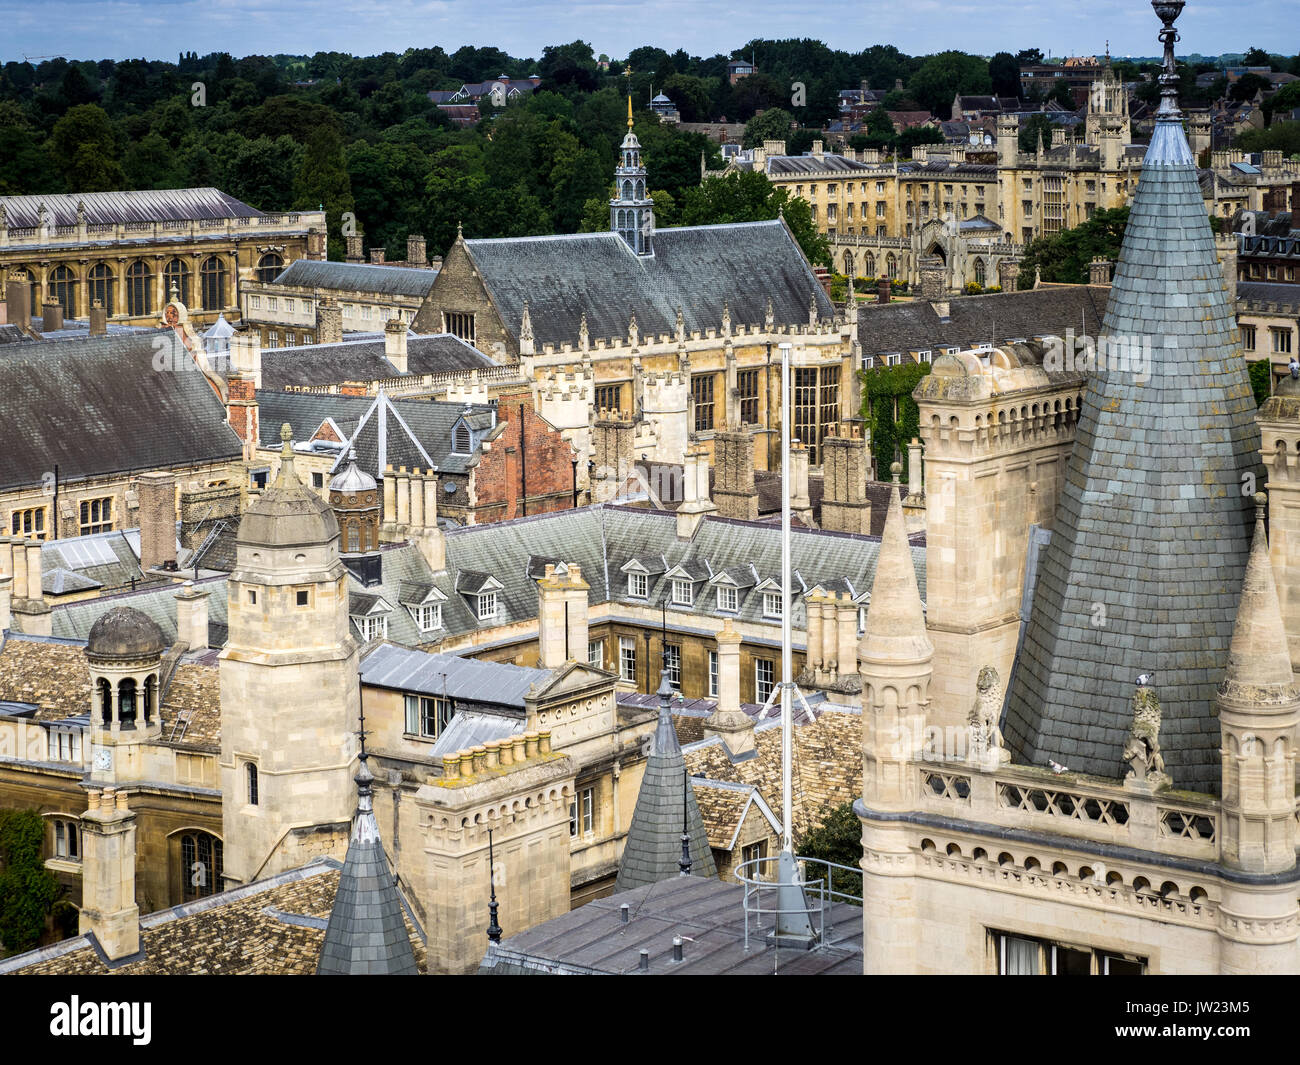 Cambridge Cityscape Skyline - Trinity College St John's College Gonville and Caius College - classical Cambridge rooftops - Stock Image